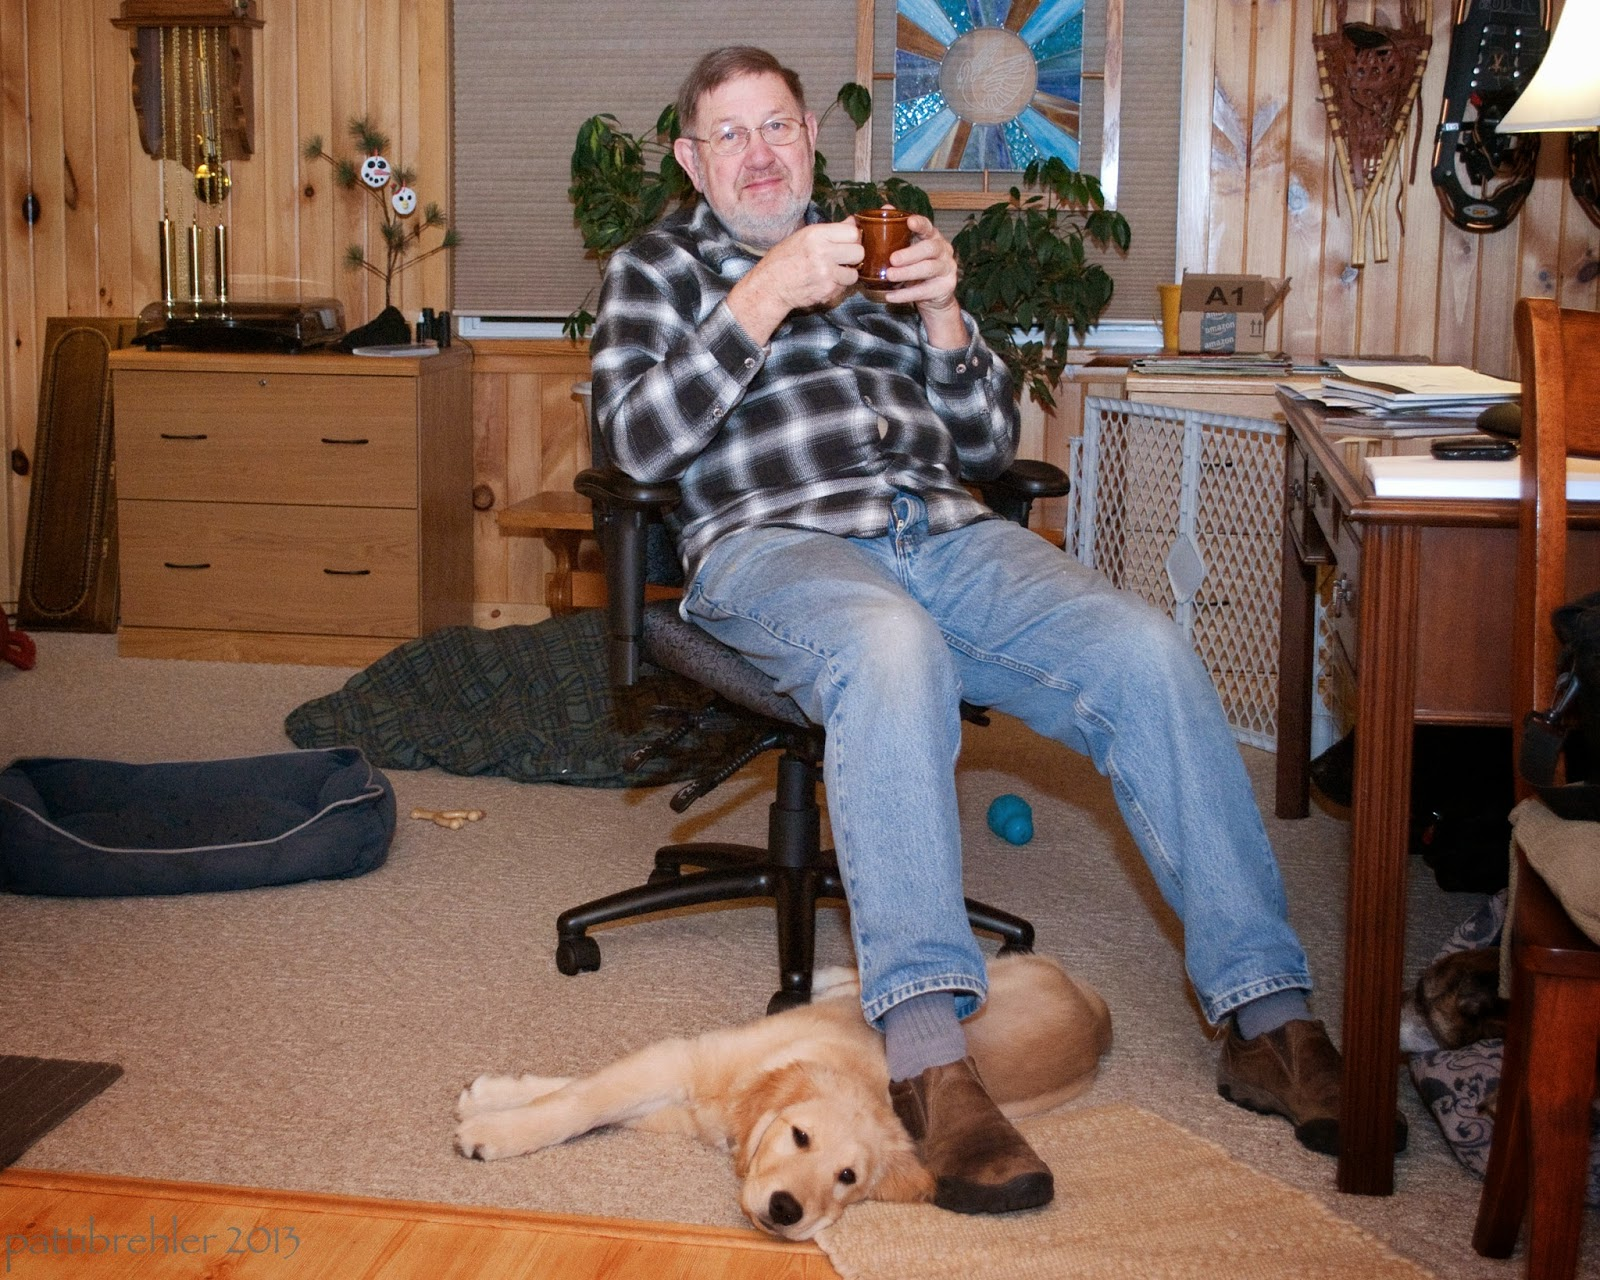 A man wearing glasses and holding a brown coffee mug, wearing a black and white checked shirt and blue jeans is sitting in a black office chair. A desk is just off to the right. A golden retriever is lying on the floor under his legs, looking at the camera, the dog is on his side. The room is paneled in tongue and groove pine, there is a light brown file cabient in the background on the left and two blue dog beds on the floor on the left.